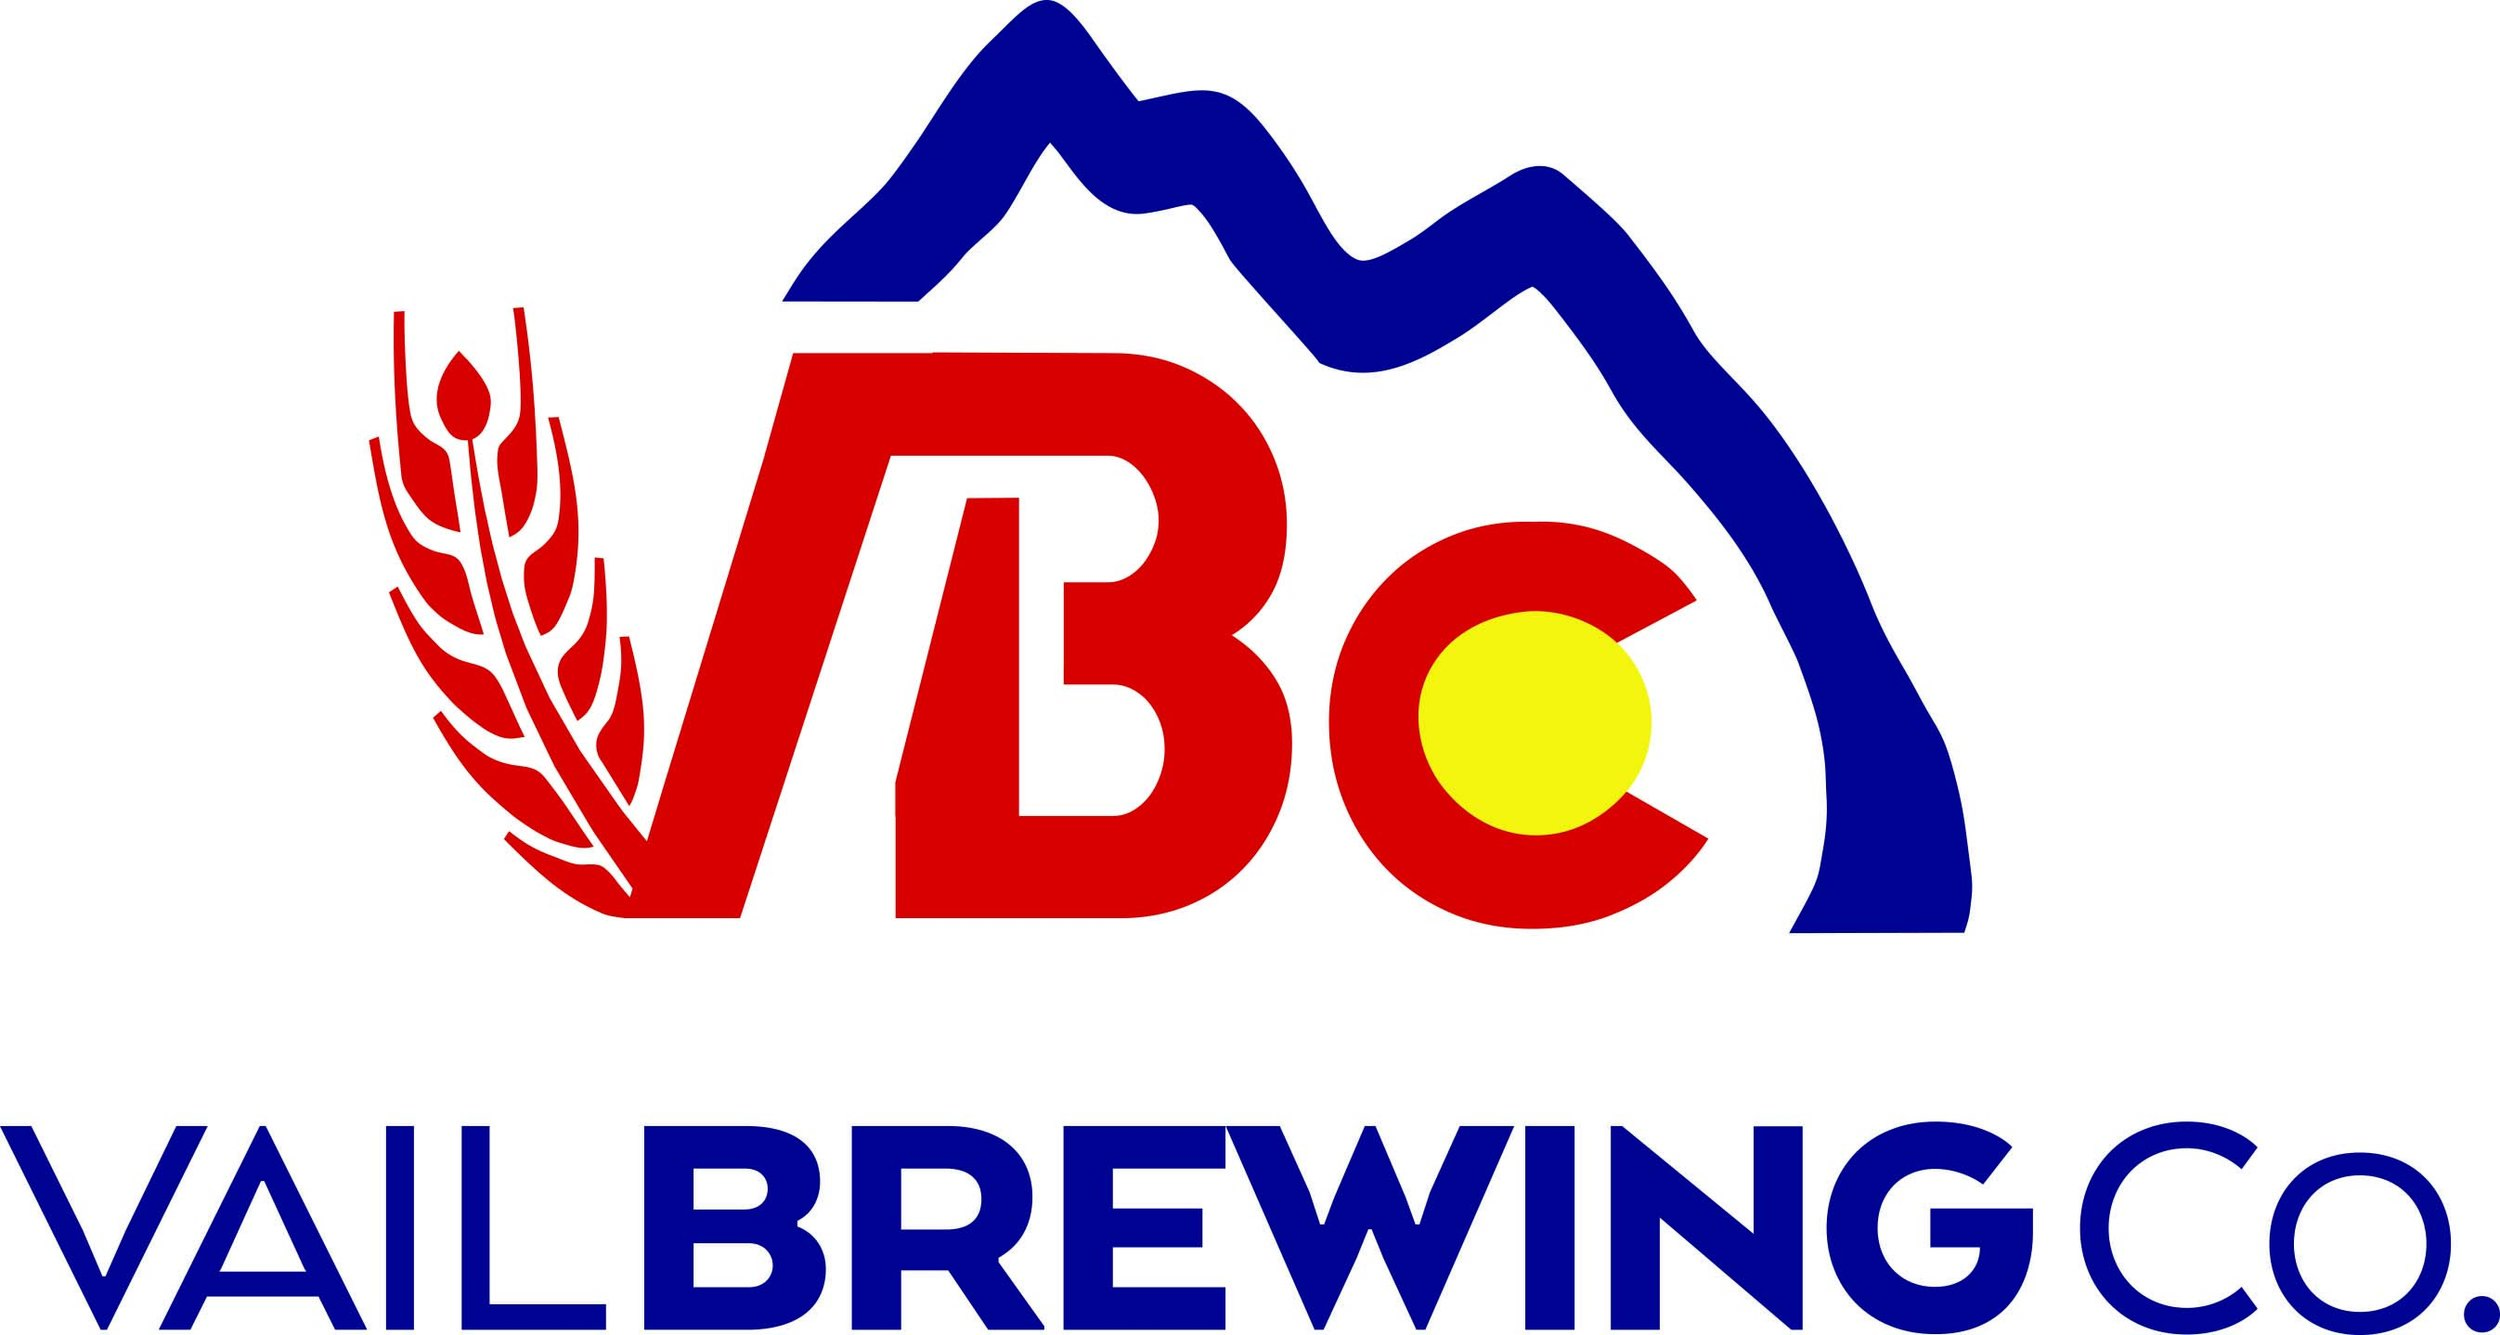 Updated_VailBrewingCo Logo Coloardo Colors_2.jpg